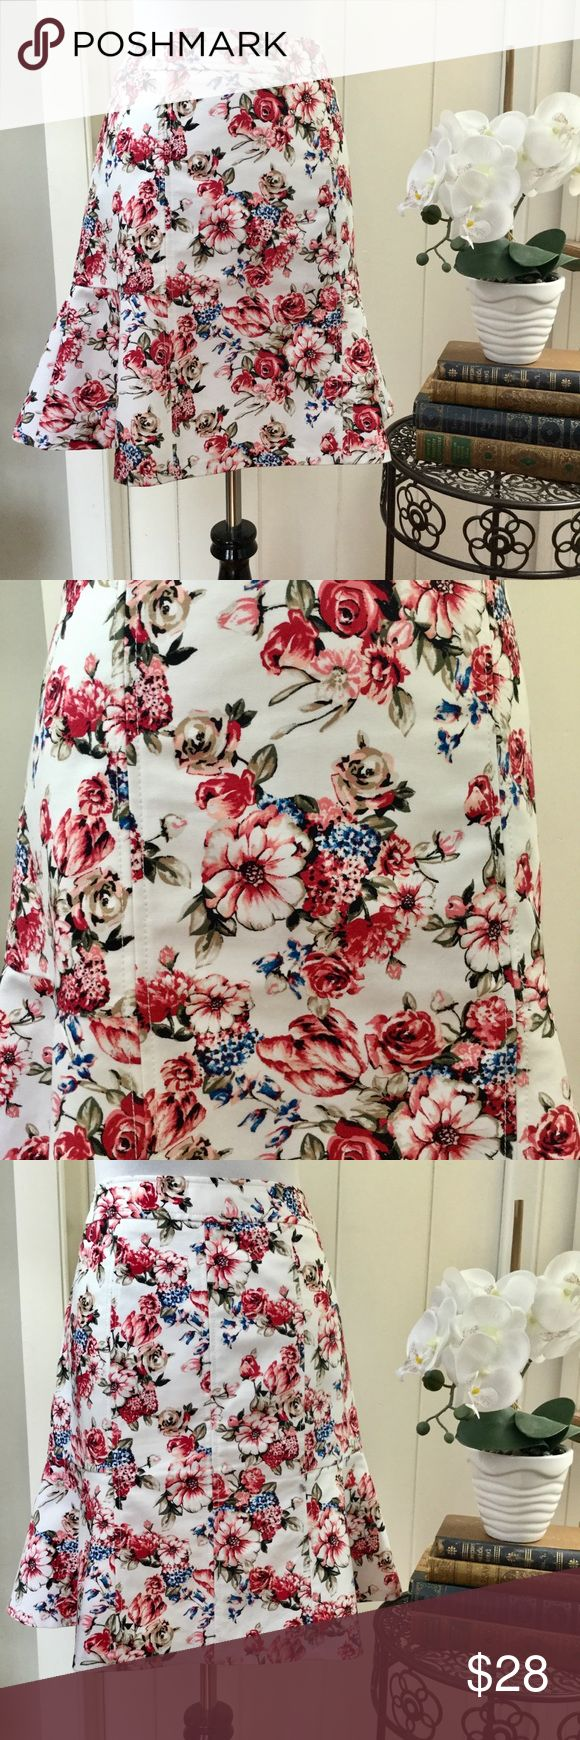 """WHBM Rose & White Floral Cotton Trumpet Skirt Gorgeous fully lined cotton and spandex trumpet skirt with a white, rose, green and blue floral print, flattering pleats and flowing hemline. Very figure flattering and fresh for spring. In excellent very lightly pre-loved condition with no holes, no spots, no rips, no defects. Waist 16.5"""", hips 19"""", length 20"""" with stretch. White House Black Market Skirts A-Line or Full"""